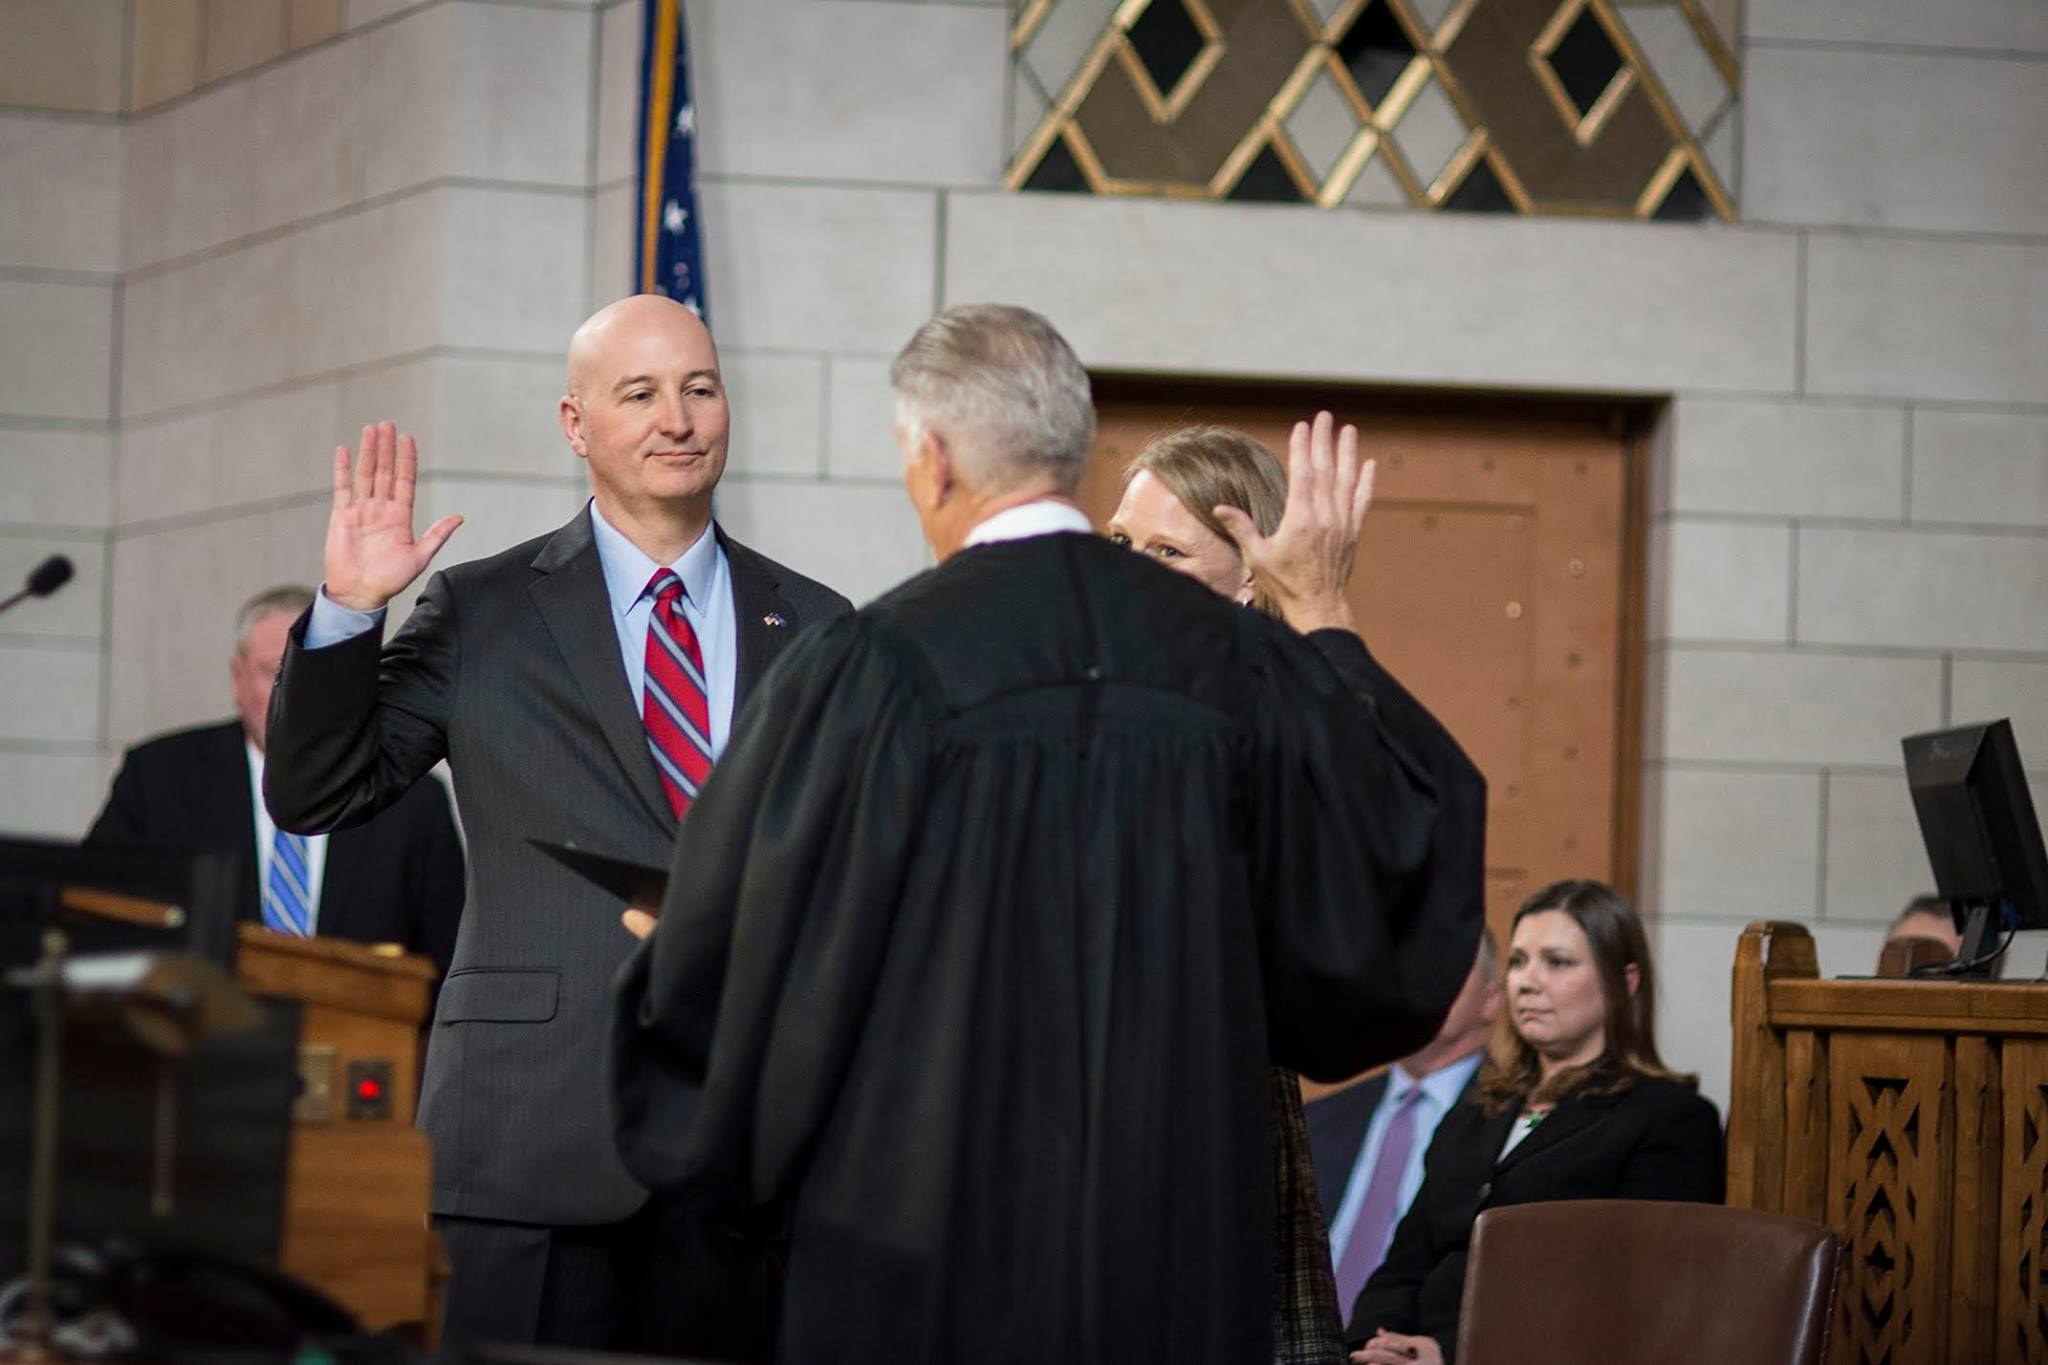 Governor Pete Ricketts Swearing In.